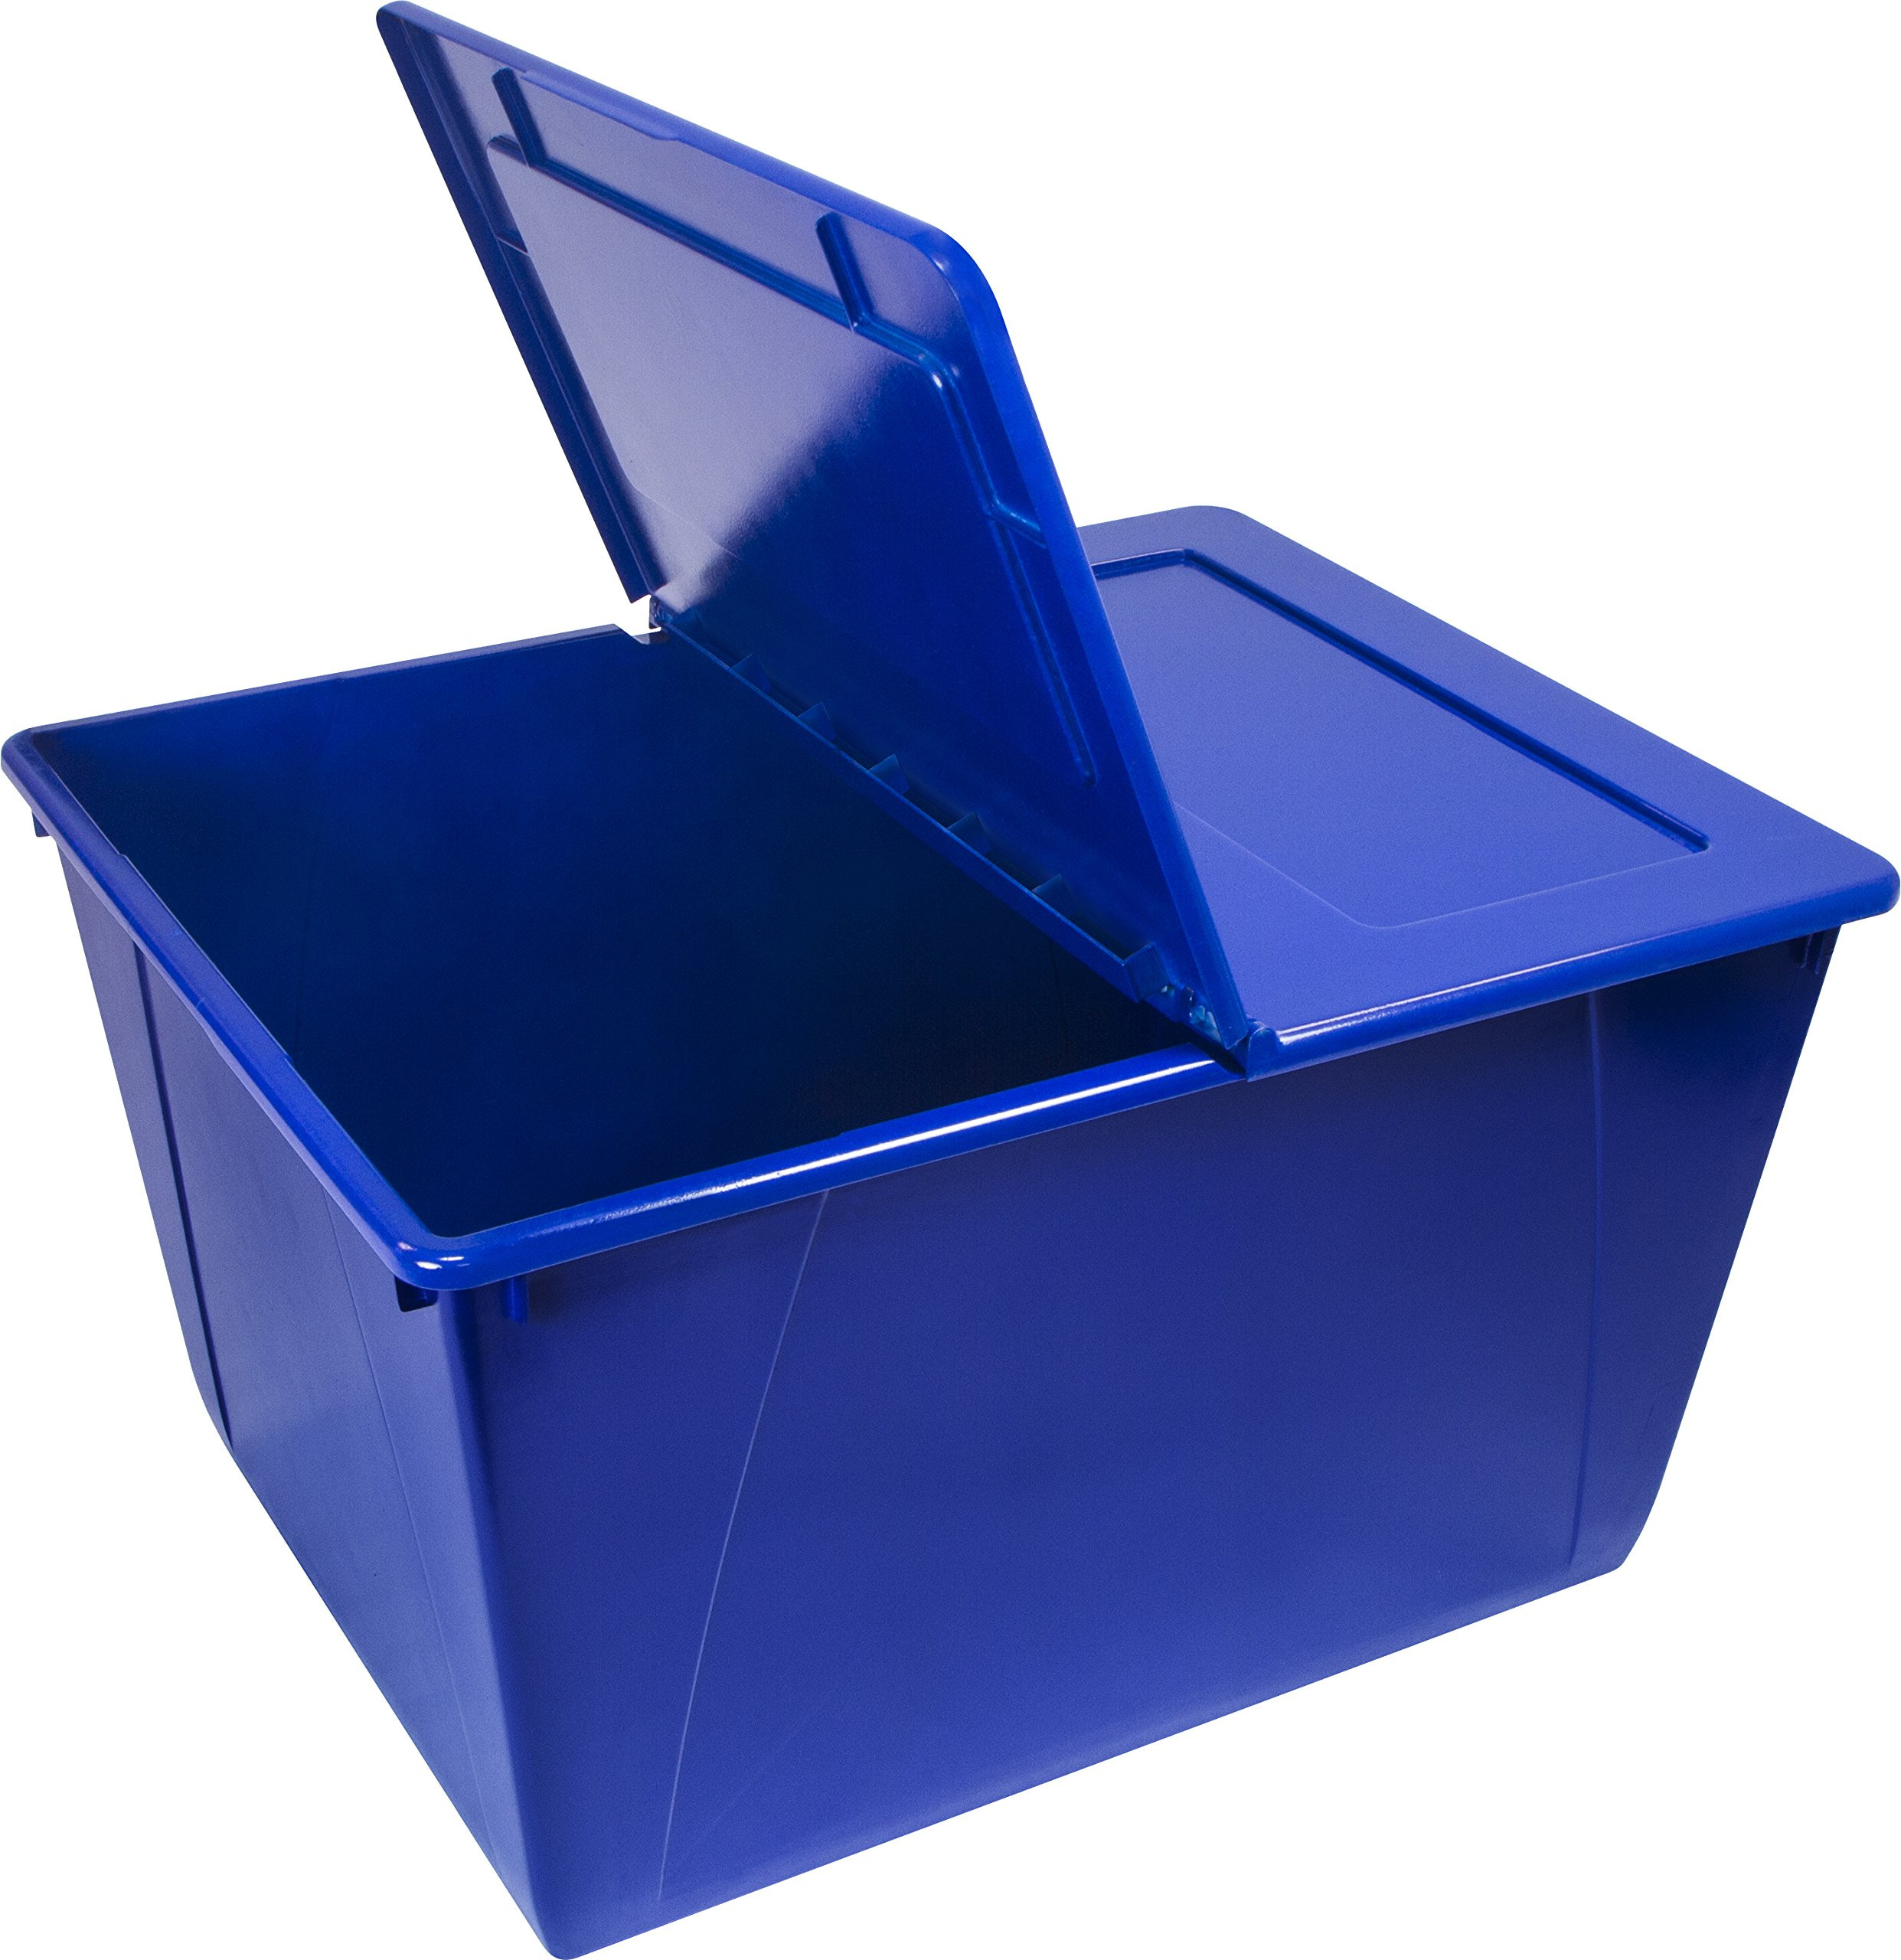 Storex 16 Gallon Storage Tote with Folding Lid, 22.7 x 18.25 x 12.86 Inches, Blue (STX00900U01C)